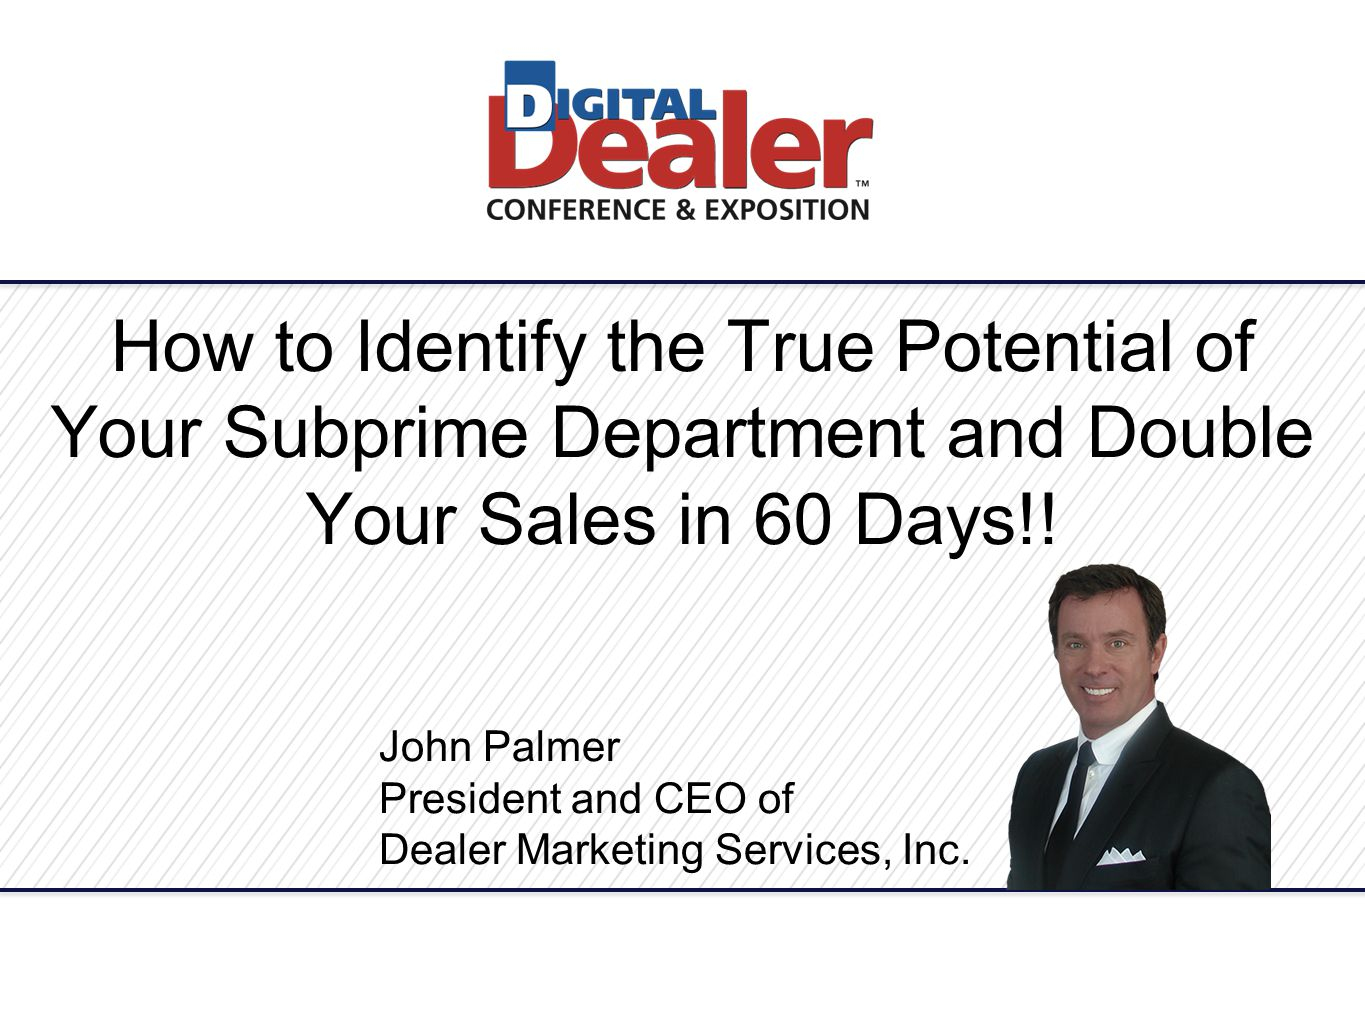 How to Identify the True Potential of Your Subprime Department and Double Your Sales in 60 Days!.